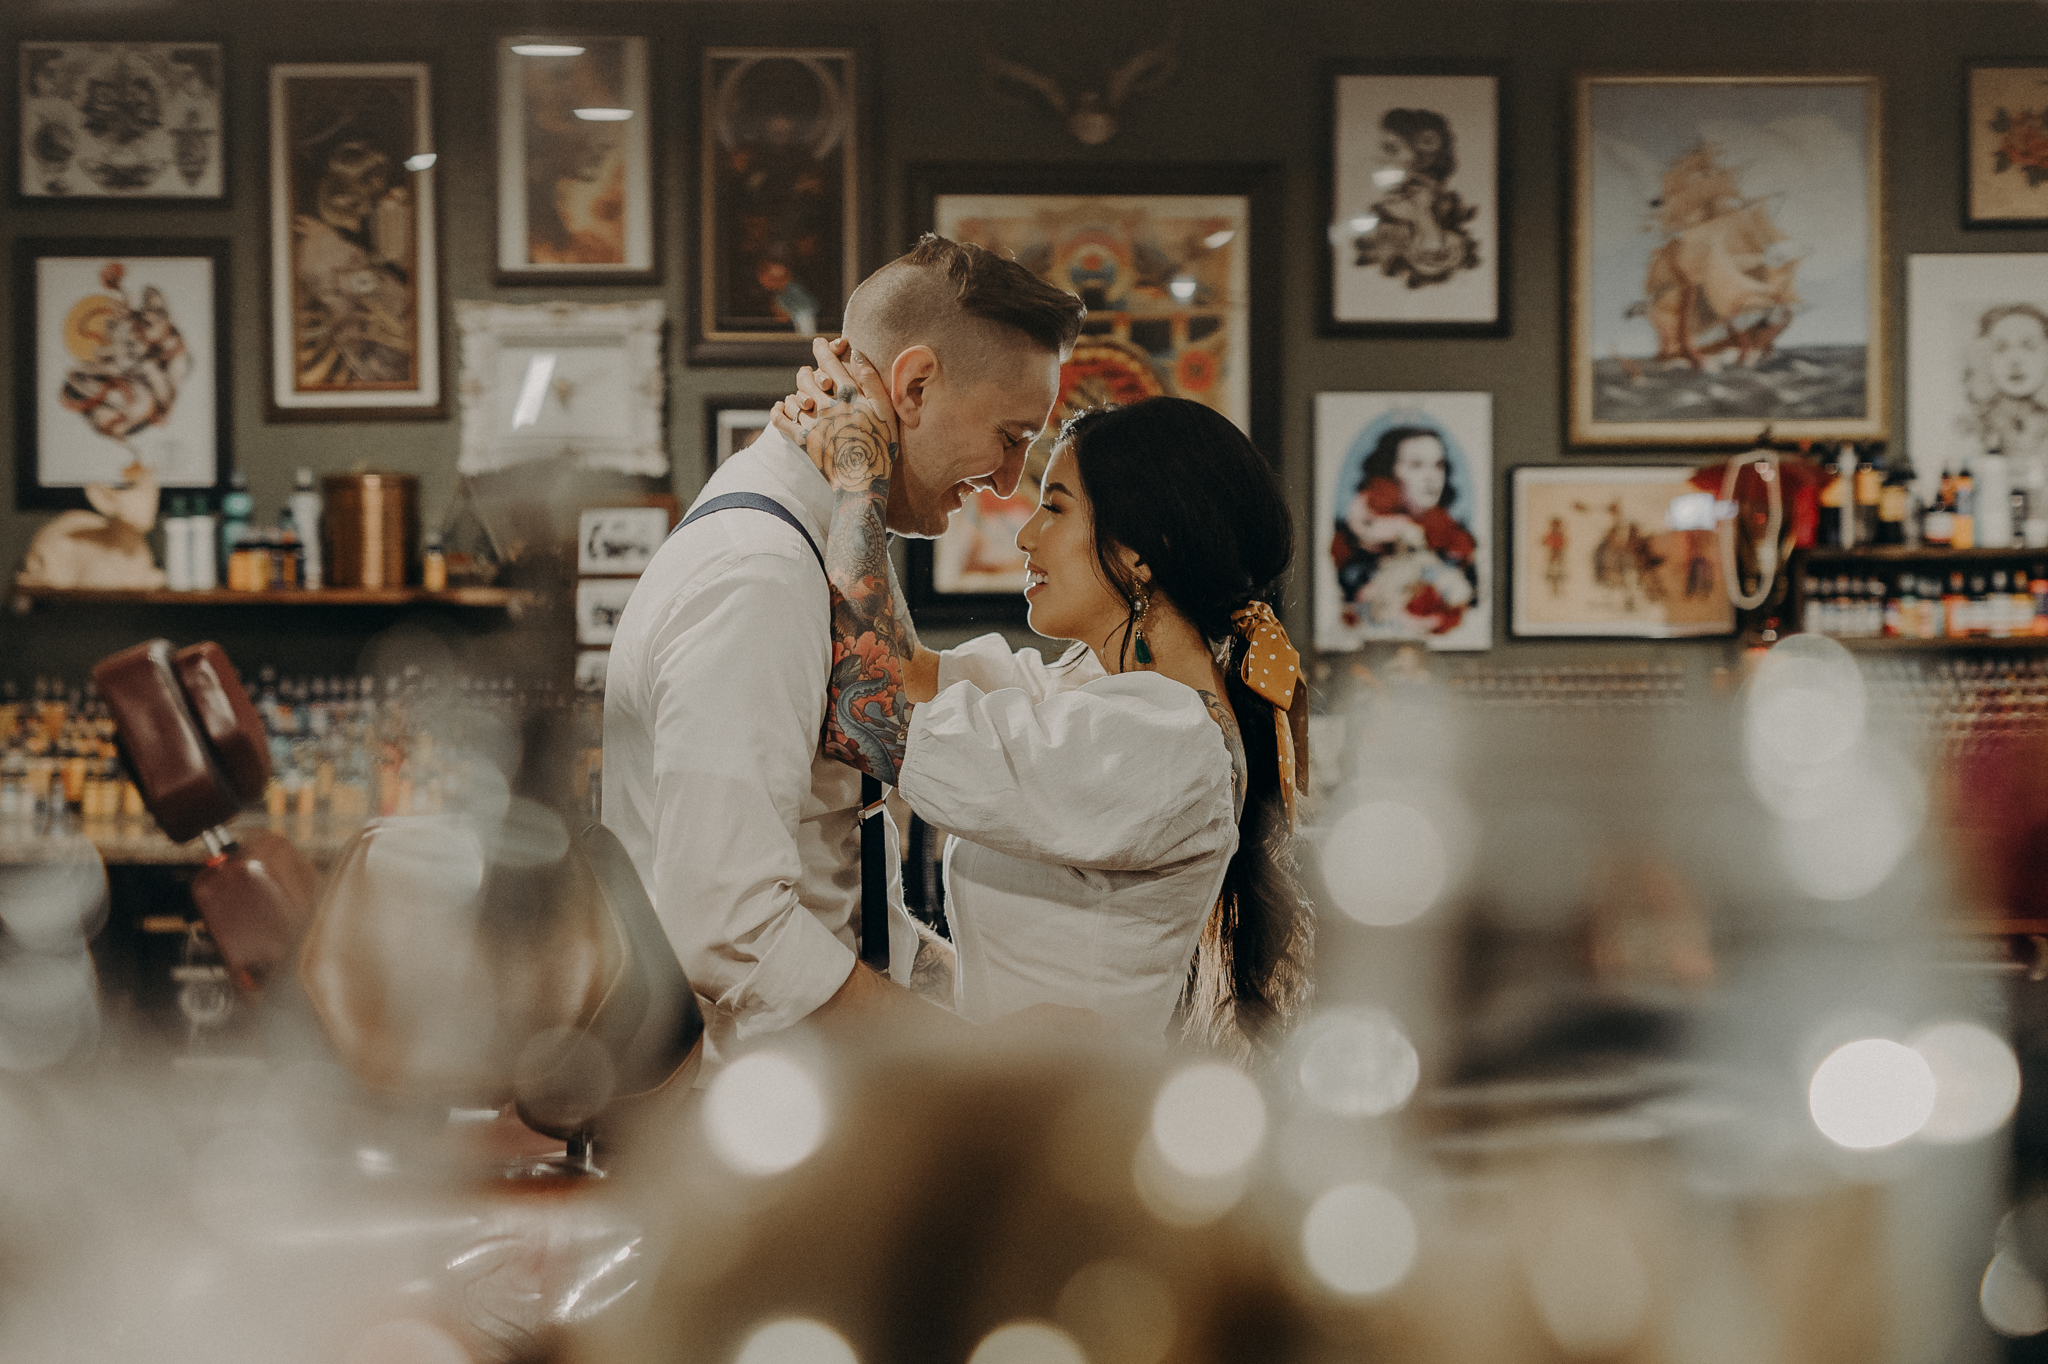 Wedding Photographer in LA - Los Angeles Wedding Photos - Tattoo Shop Engagement Session - IsaiahAndTaylor.com-004.jpg